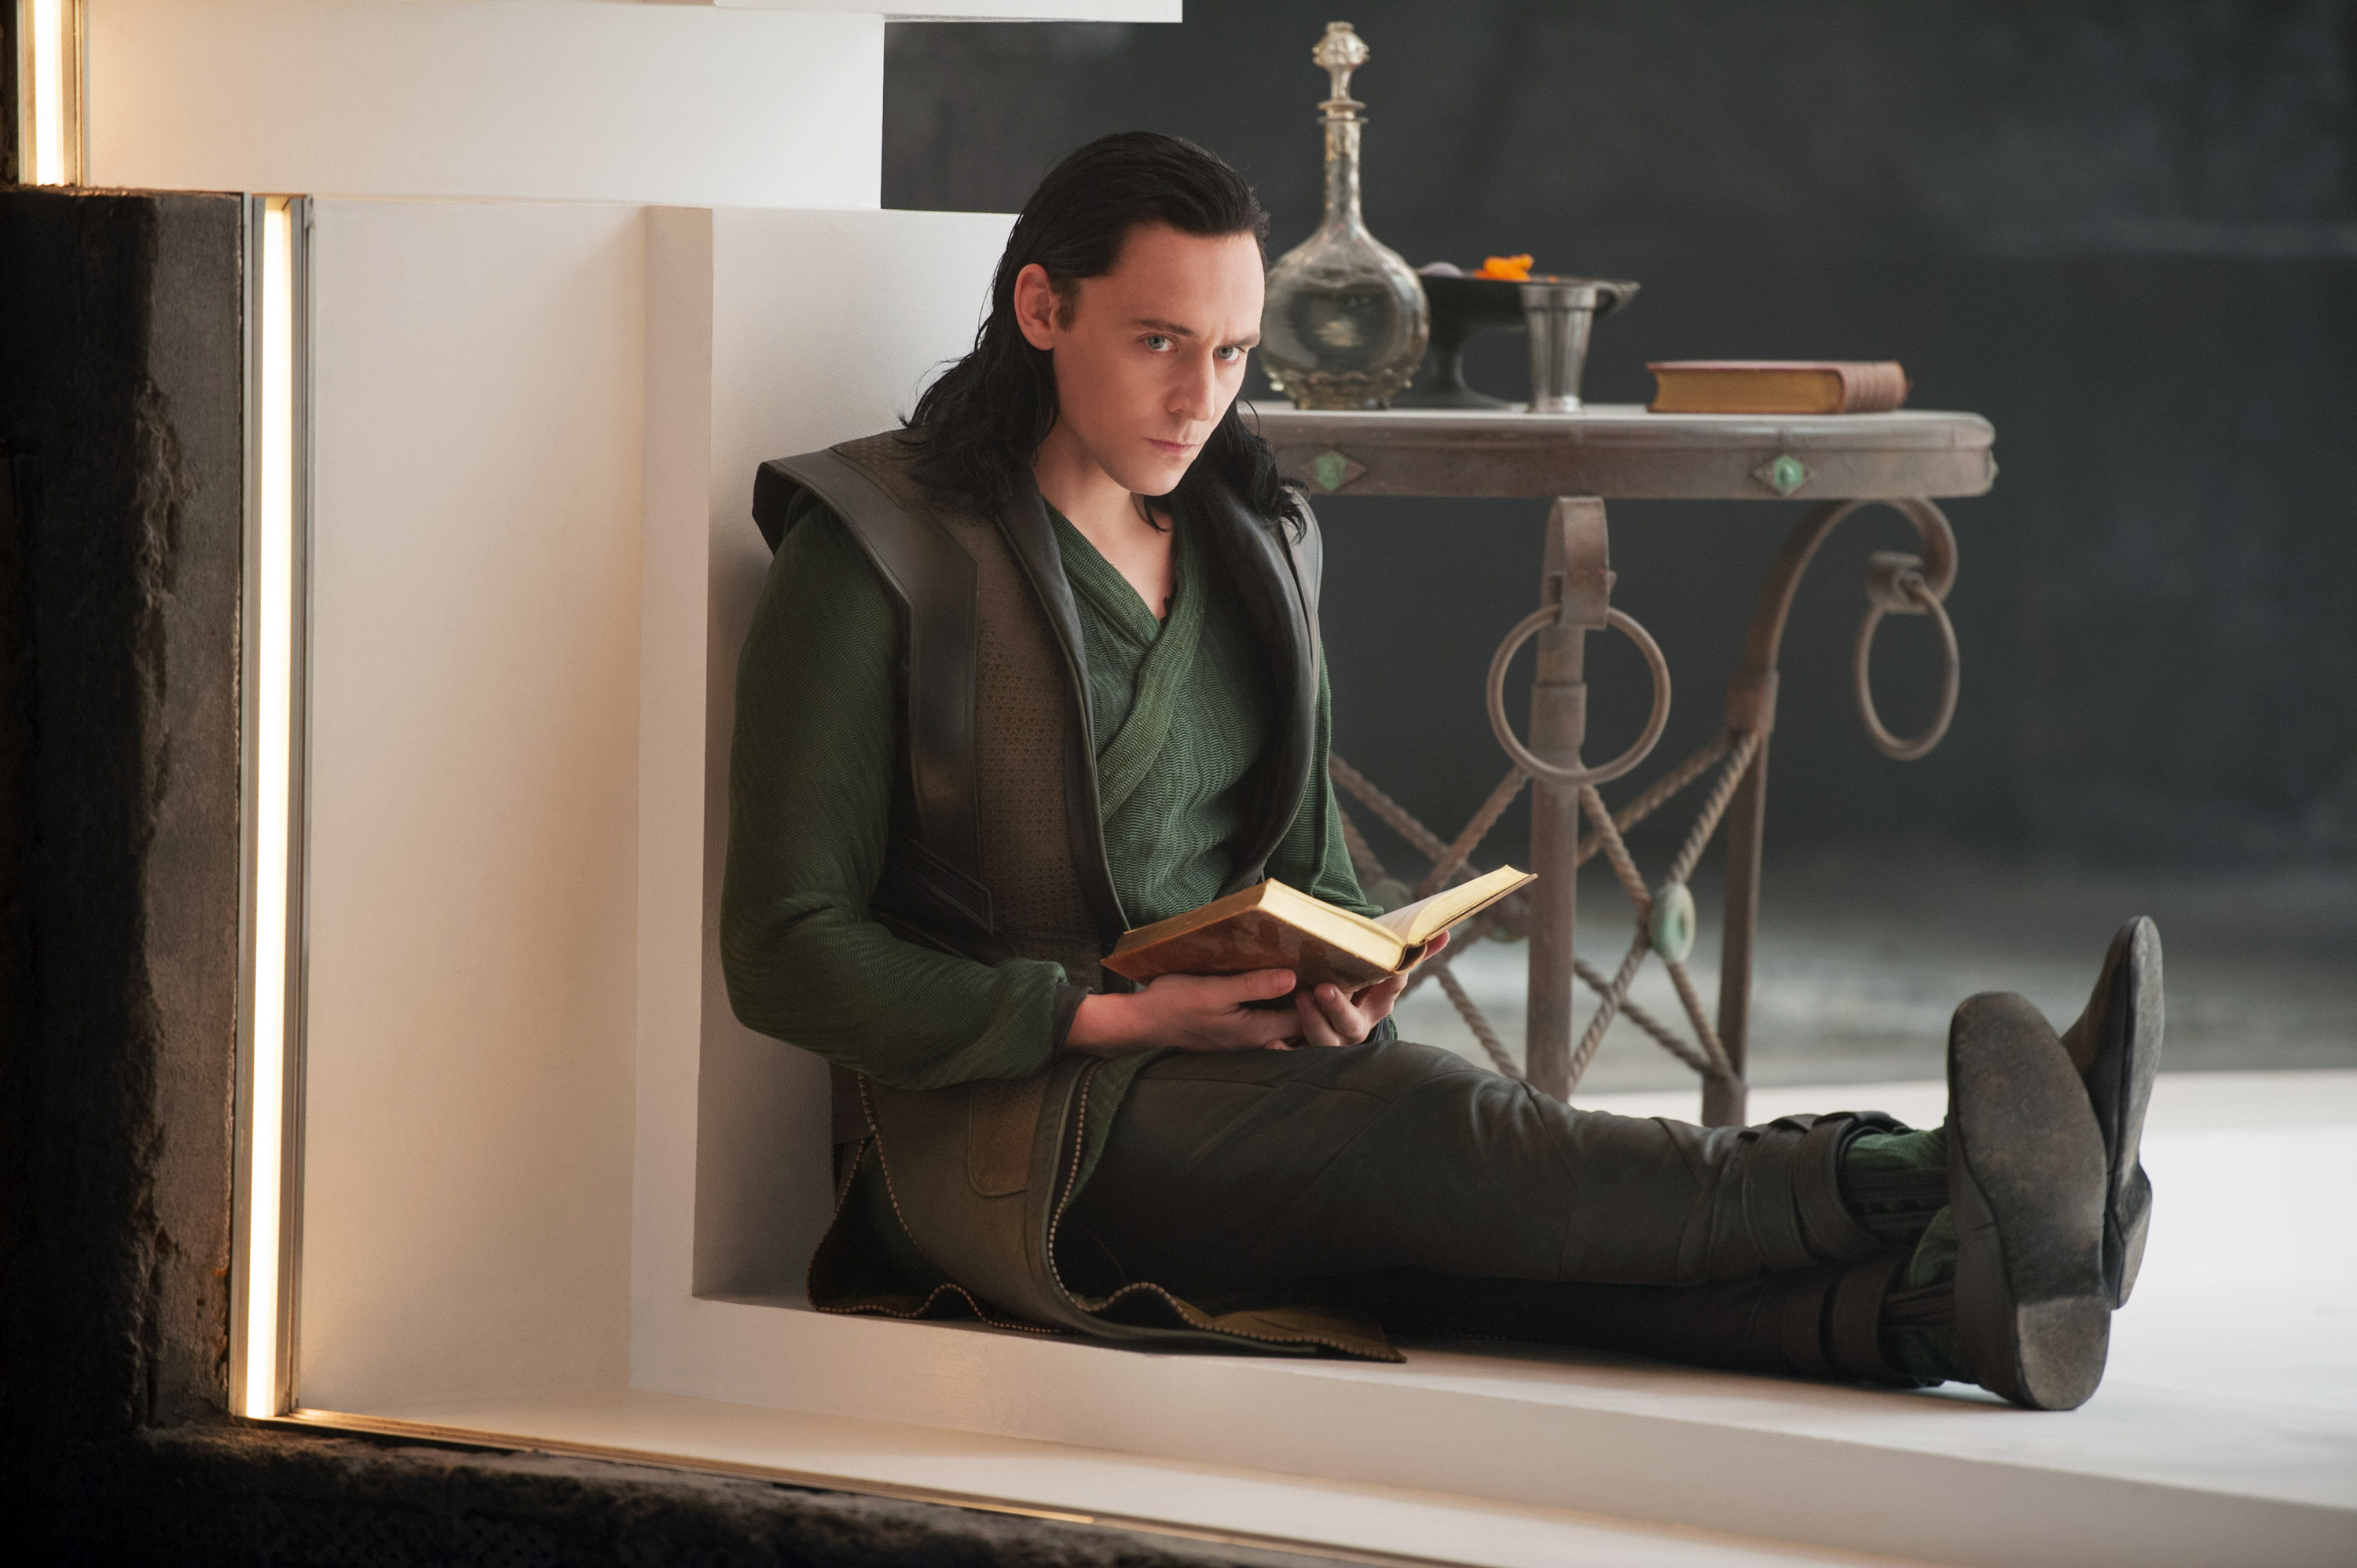 Loki reading in his prison cell